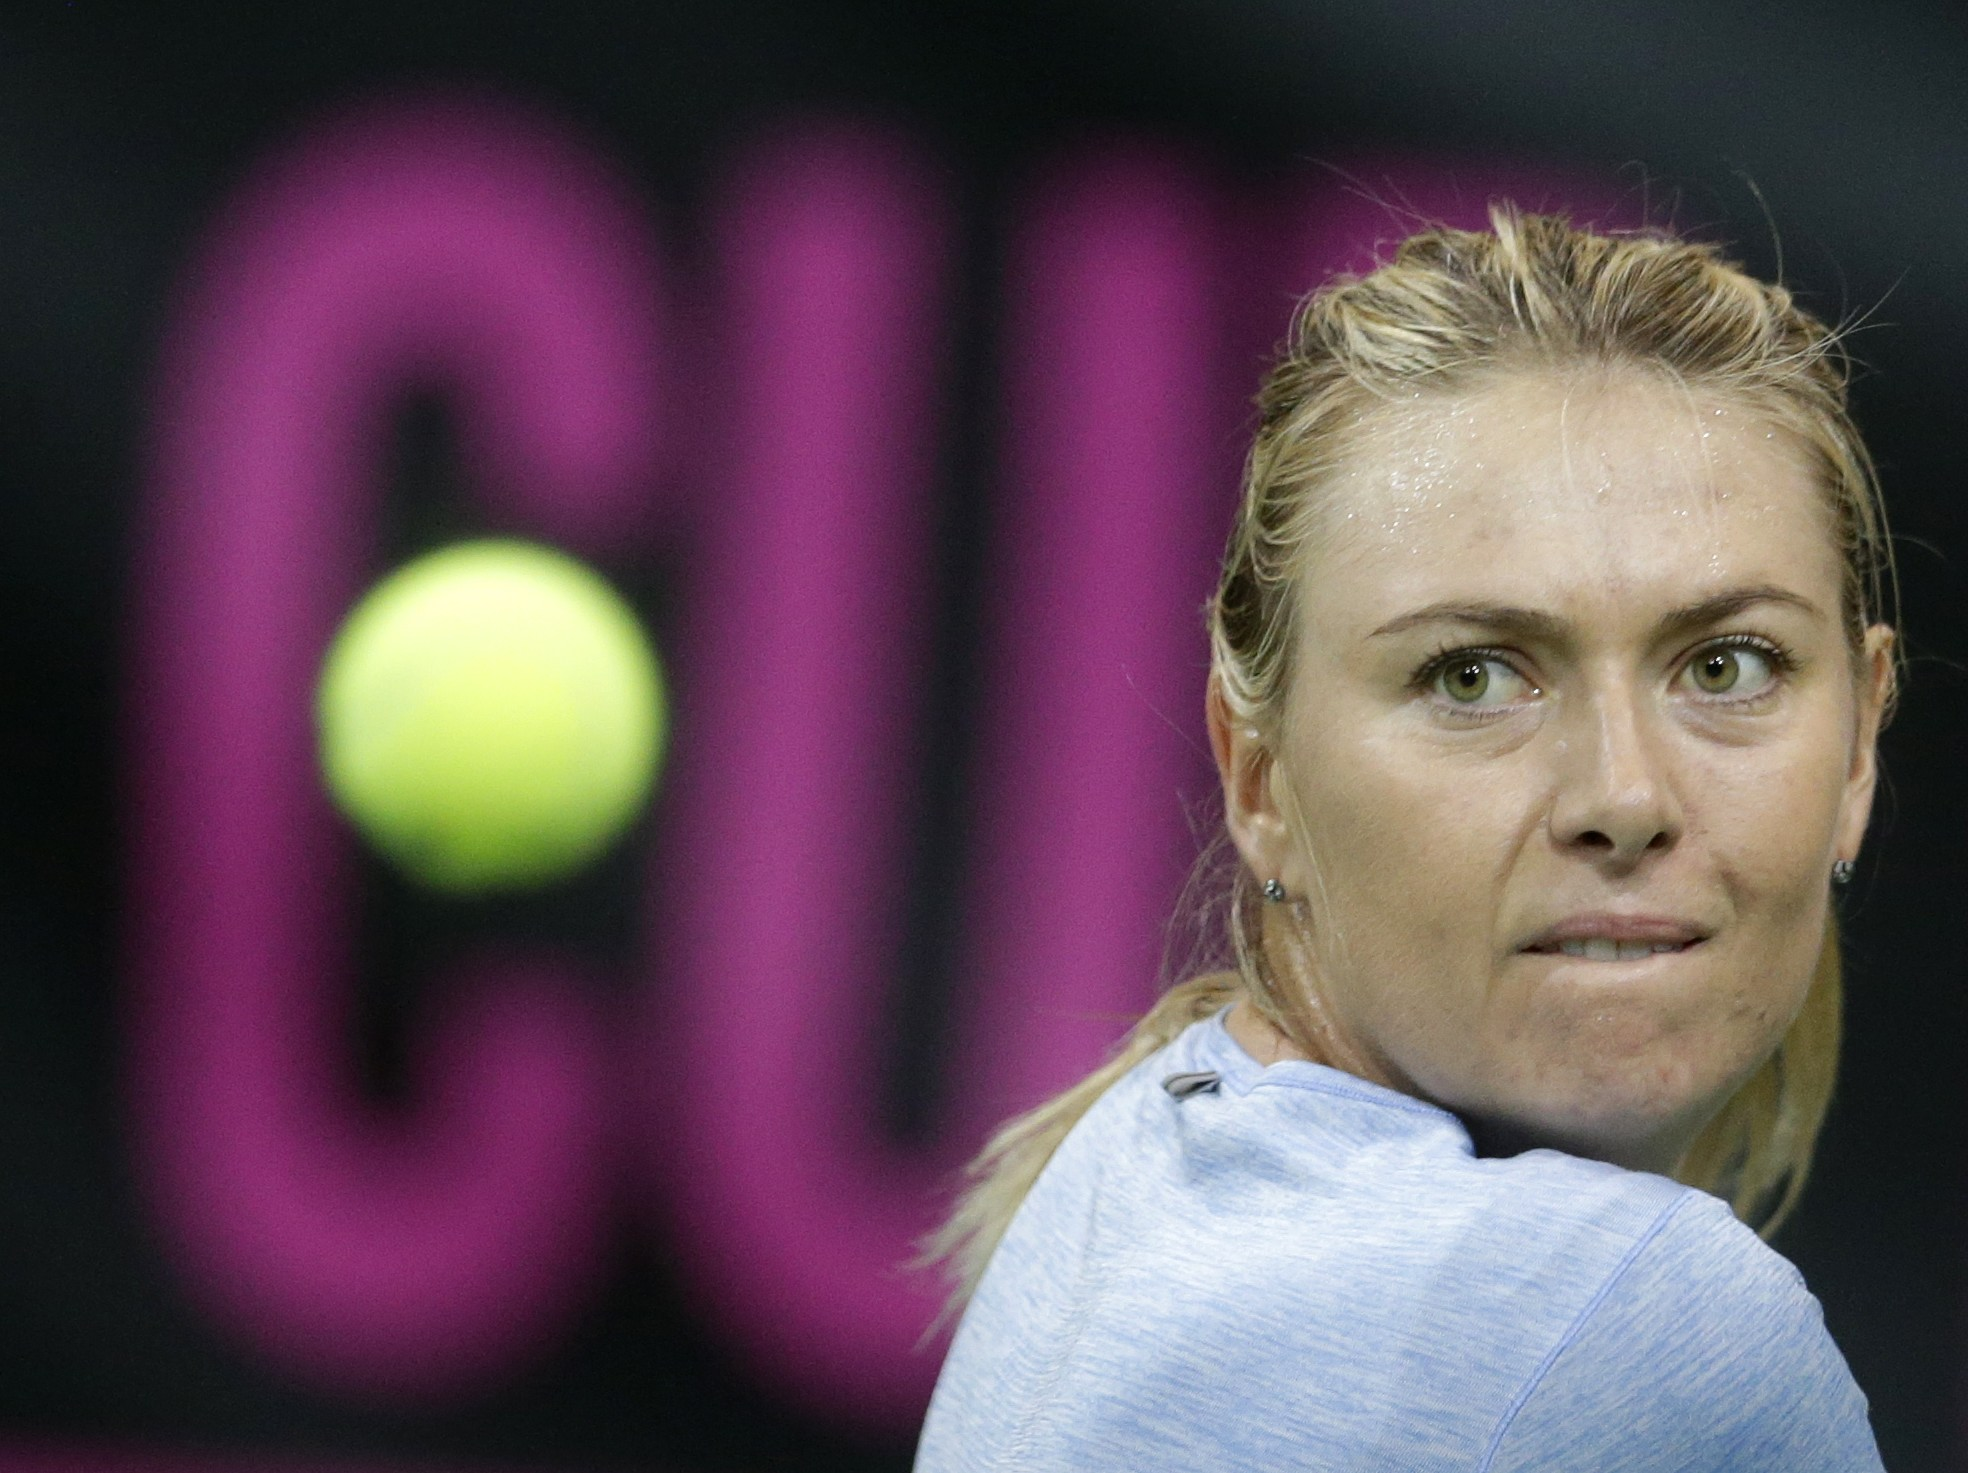 Maria Sharapova from Russia eyes a ball during a training session prior to the Fed Cup Final tennis tournament against Czech Republic in Prague, Czech Republic, Wednesday, Nov. 11, 2015. (AP Photo/Petr David Josek)